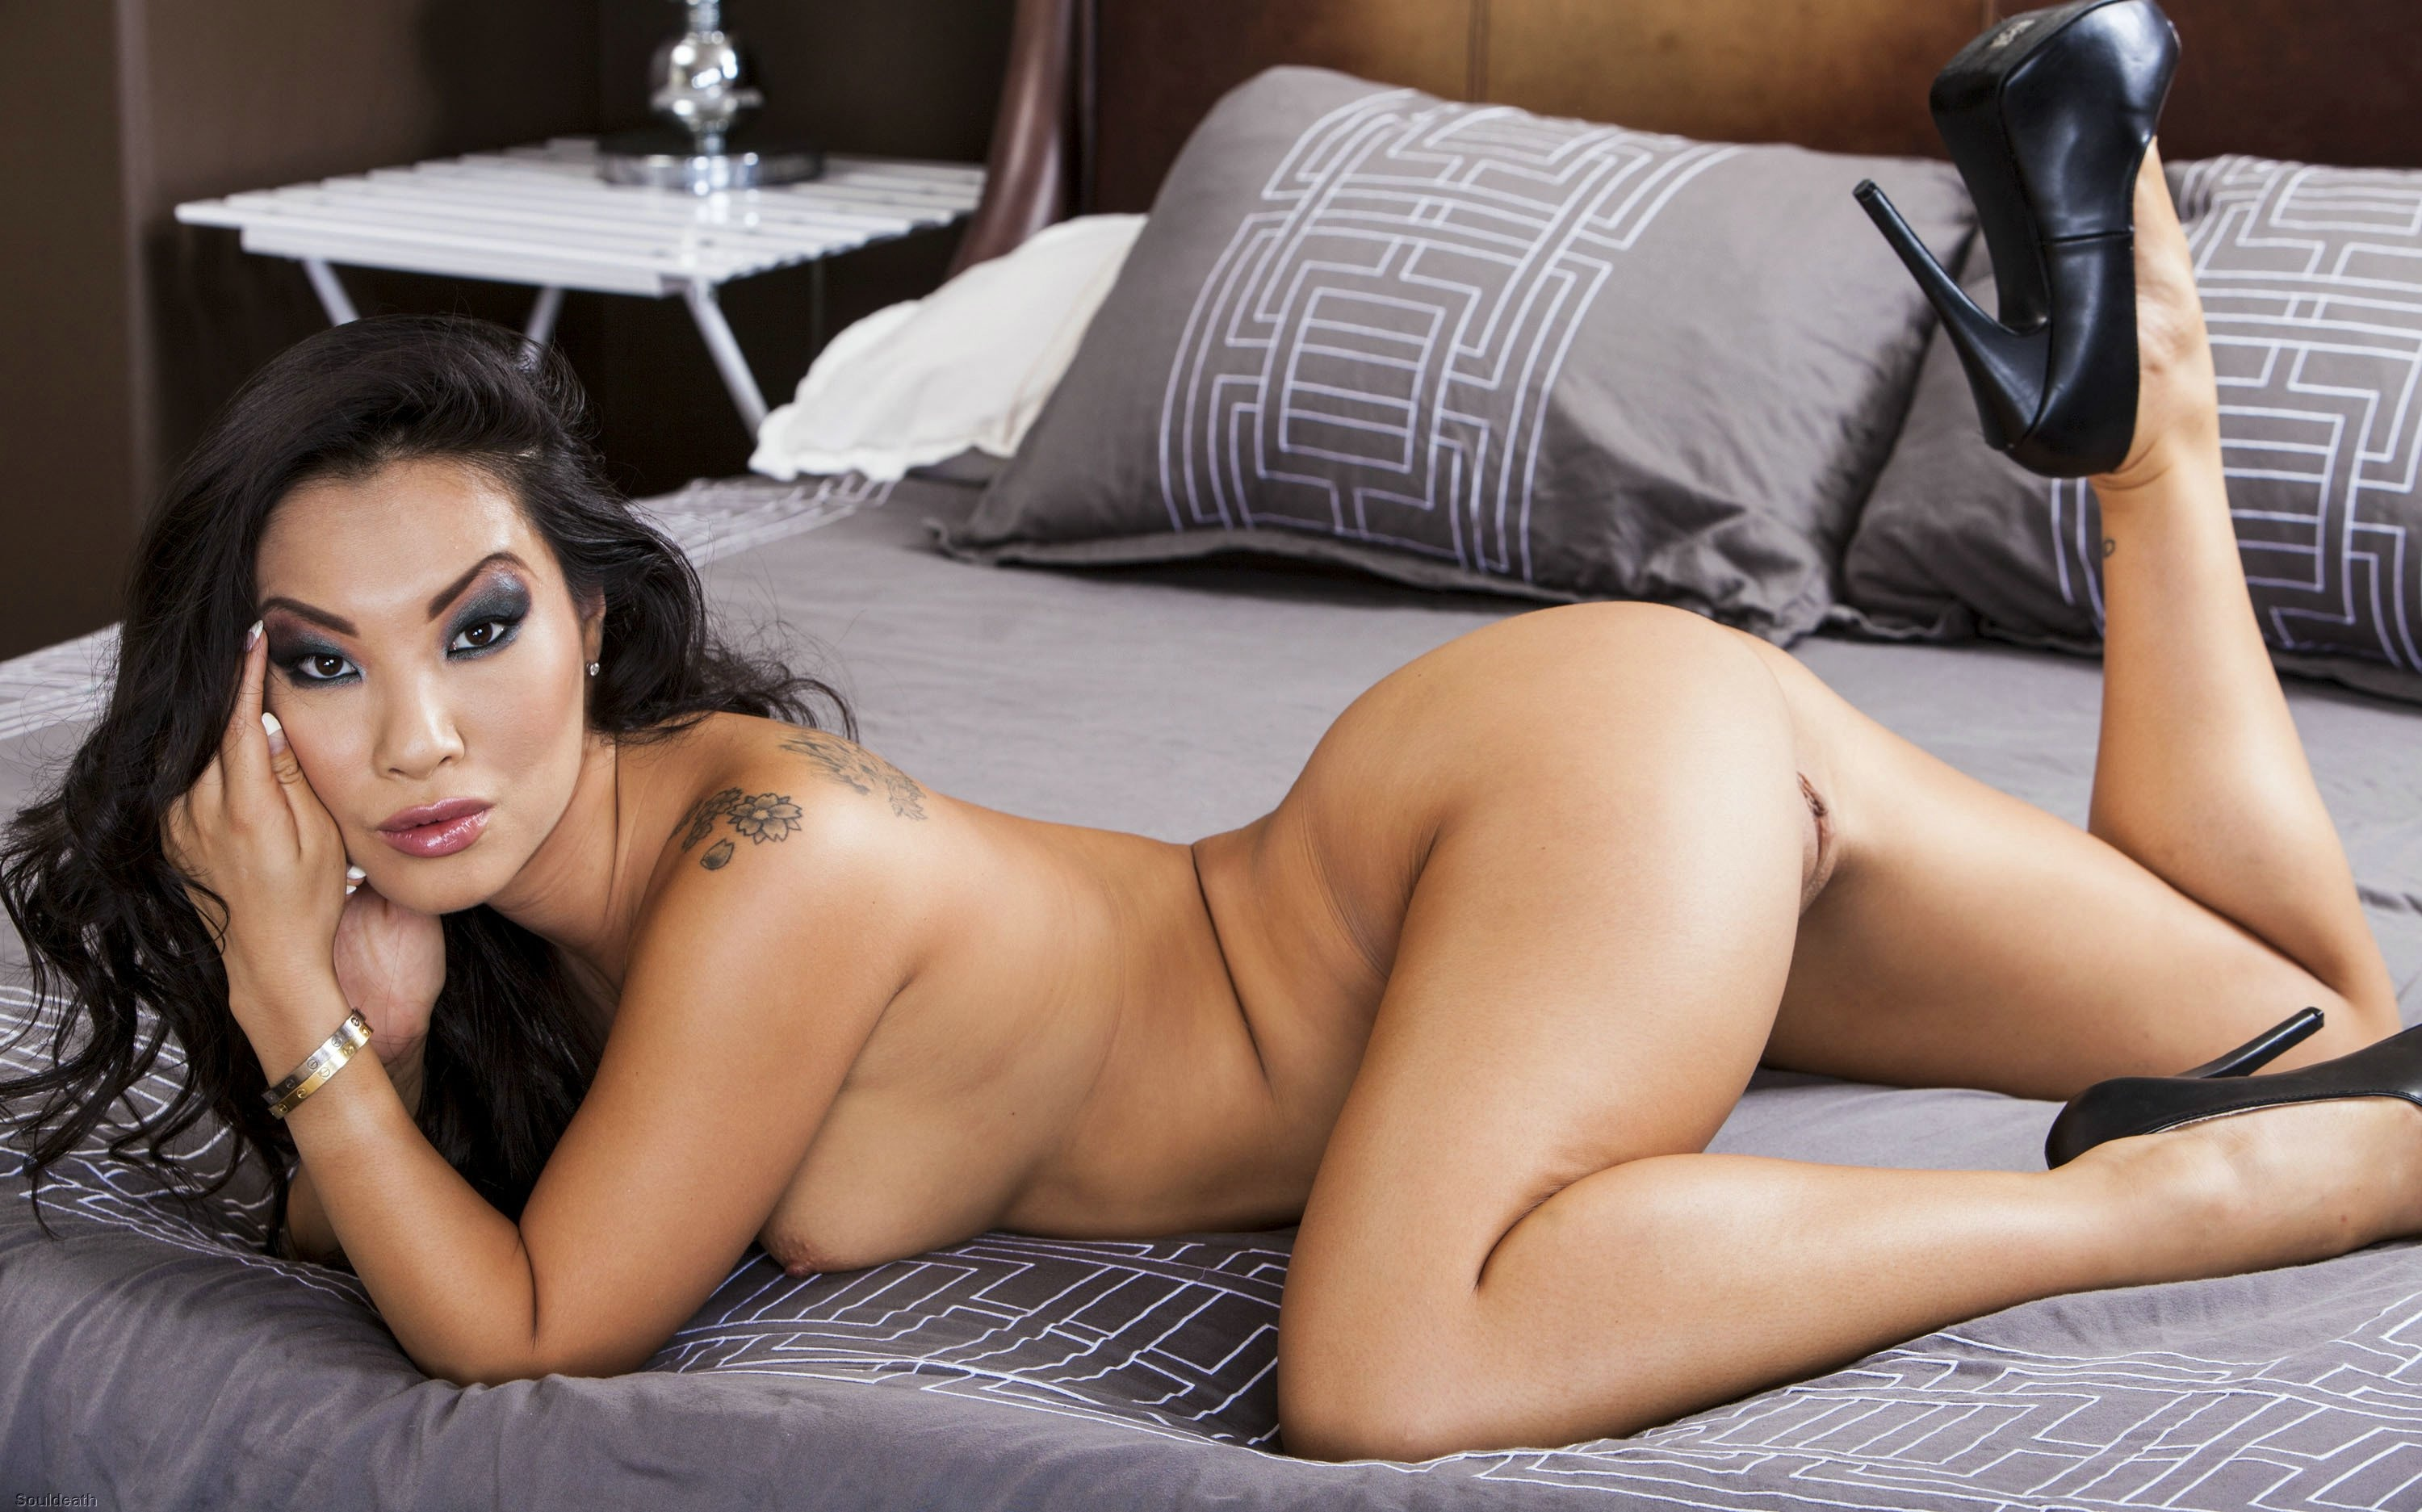 hot women naked and having sex with each other